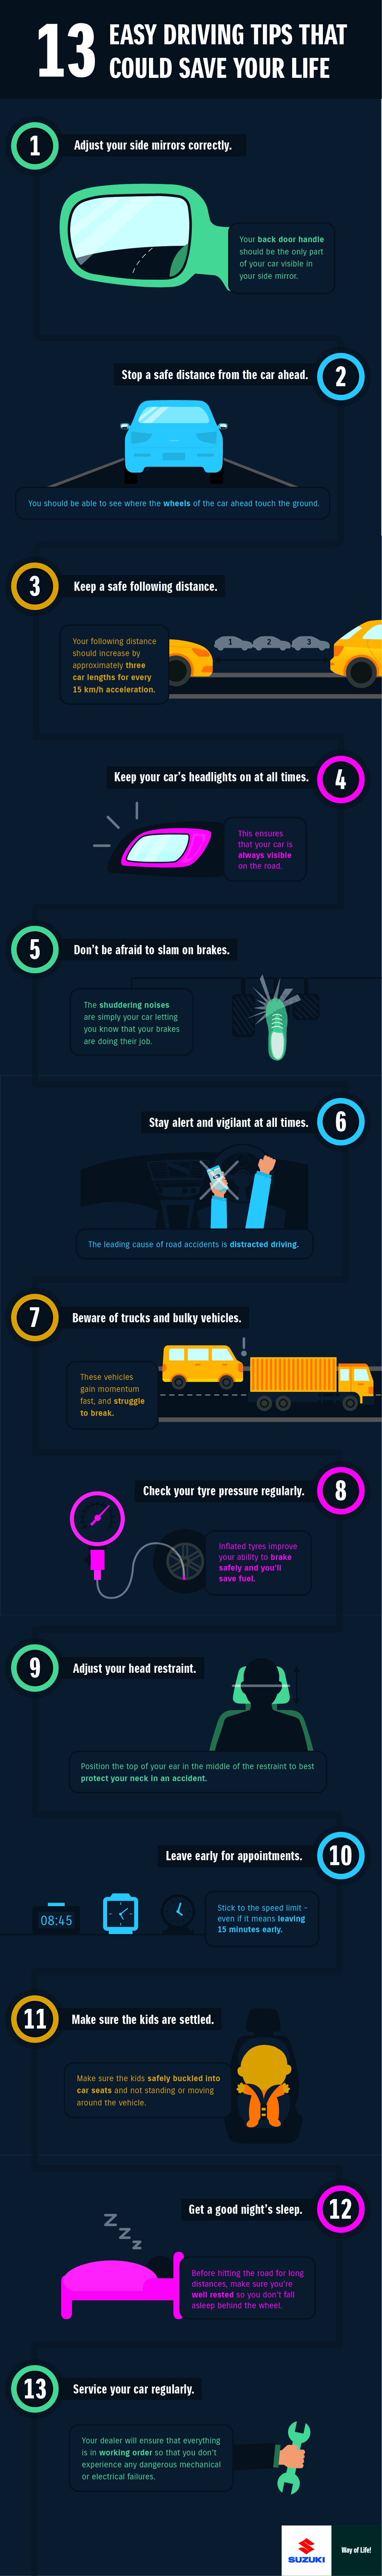 13224_8639_SASA_Inbound_13_Driving_Tips_Infographic (1)